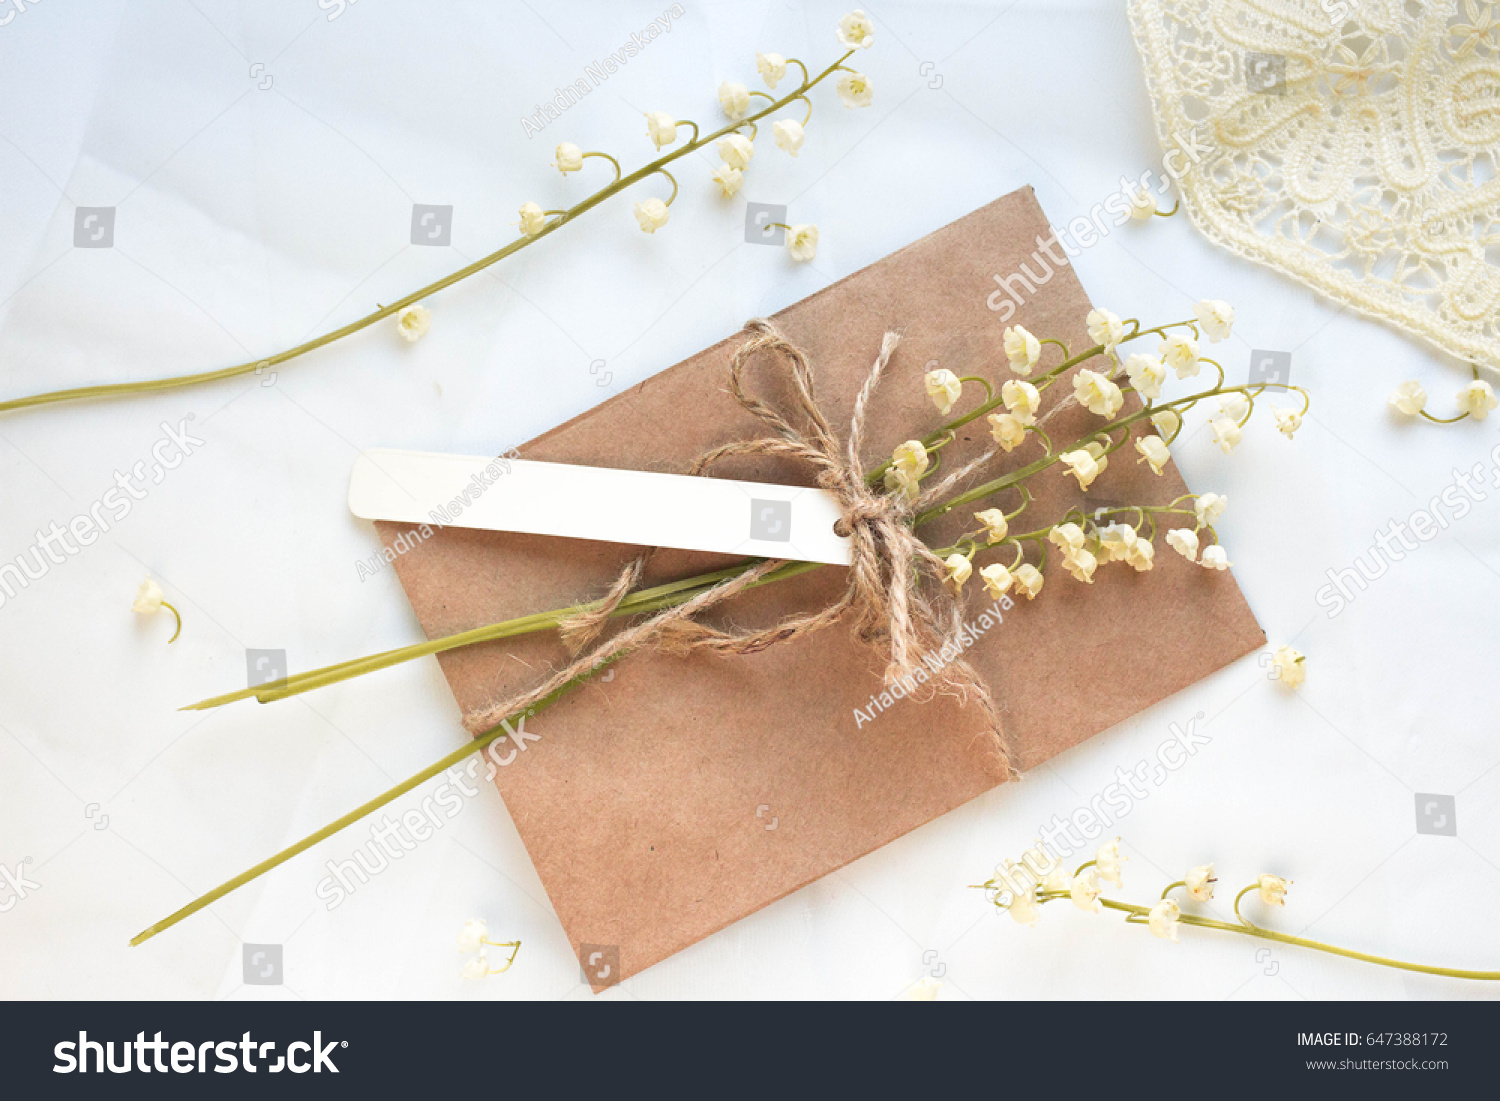 Mockup Postcard Lilies Valley On White Stock Photo 647388172 ...